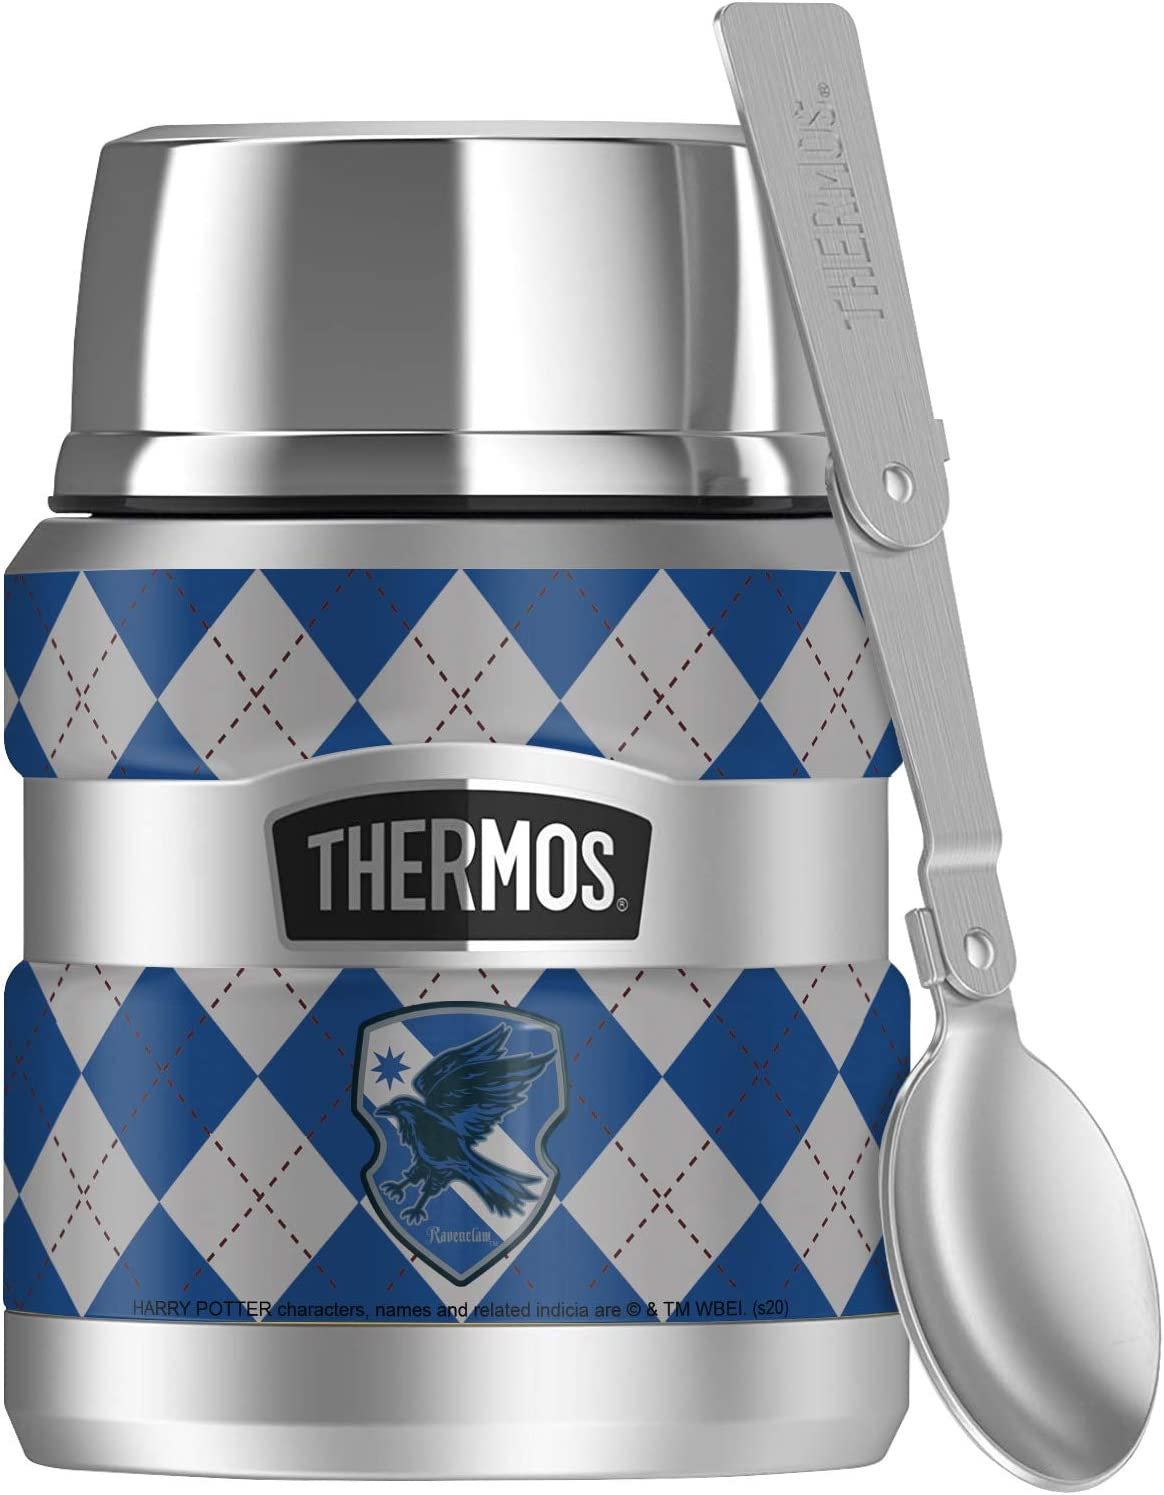 Harry Potter Ravenclaw Plaid Sigil, THERMOS STAINLESS KING Stainless Steel Food Jar with Folding Spoon, Vacuum insulated & Double Wall, 16oz